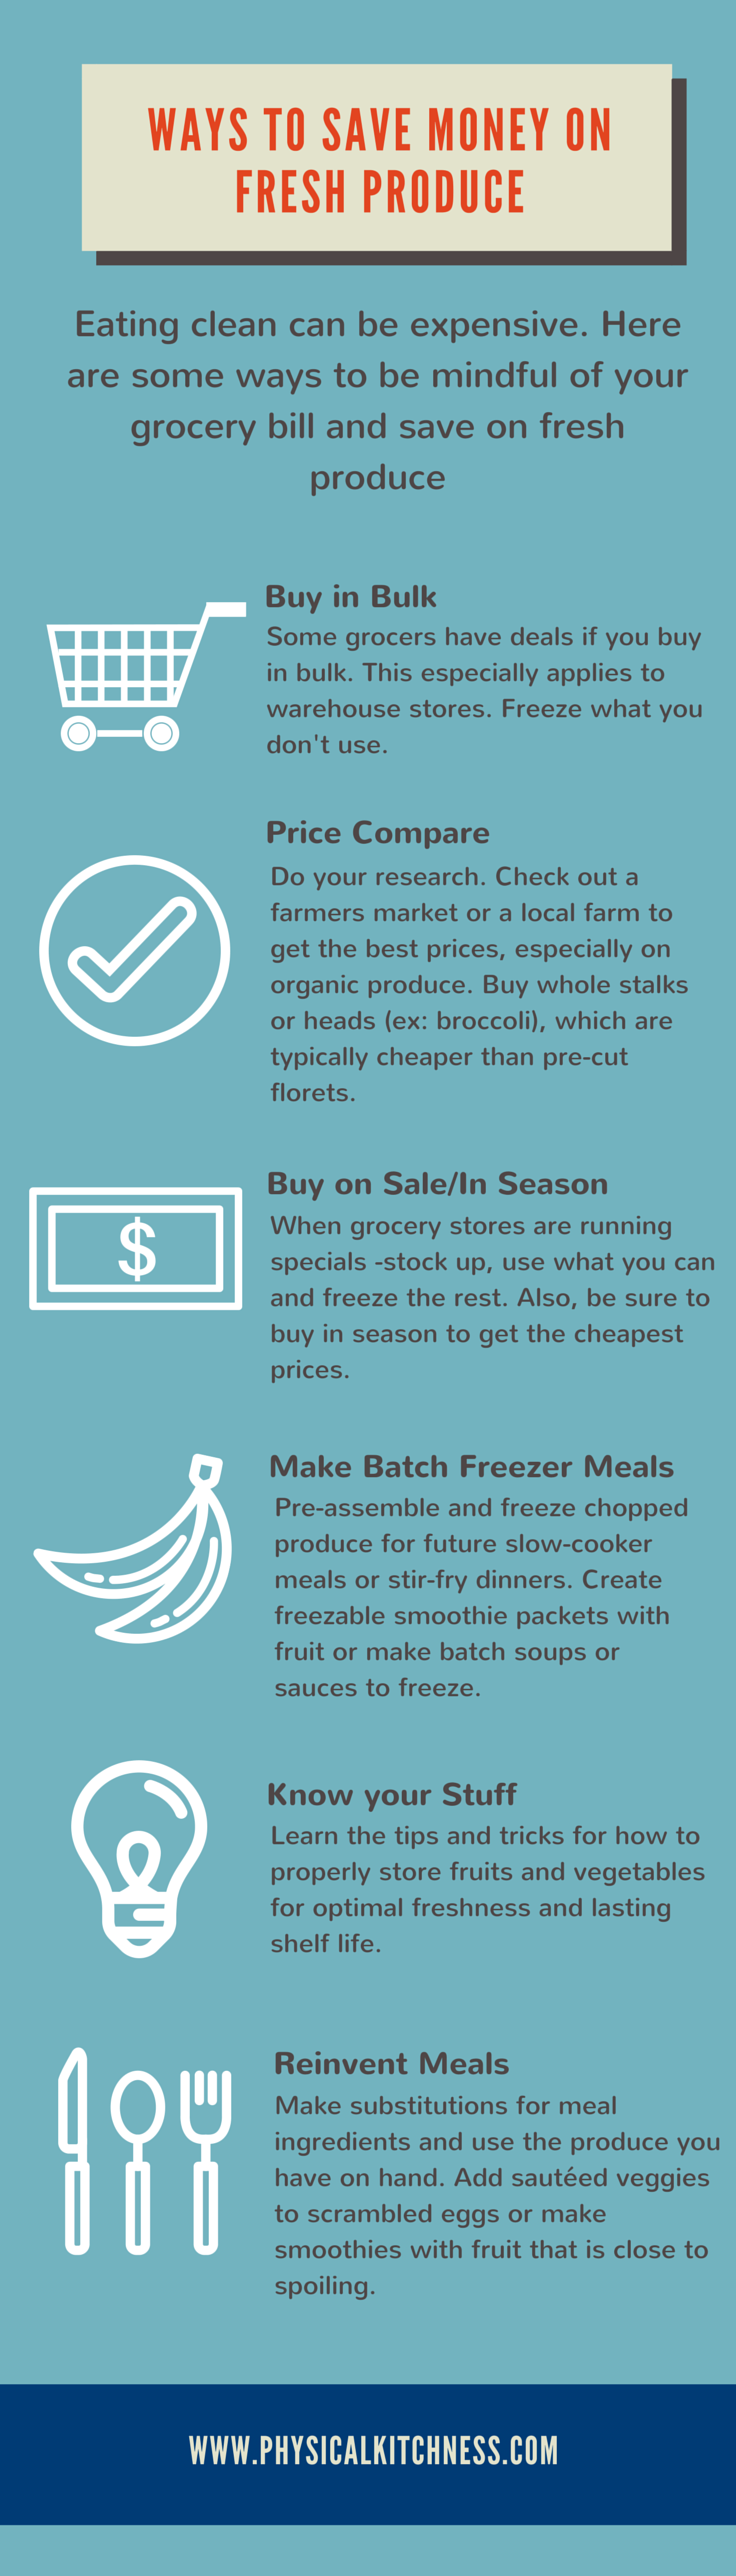 Follow these simple tips from Physical Kitchness to save money on produce and avoid waste